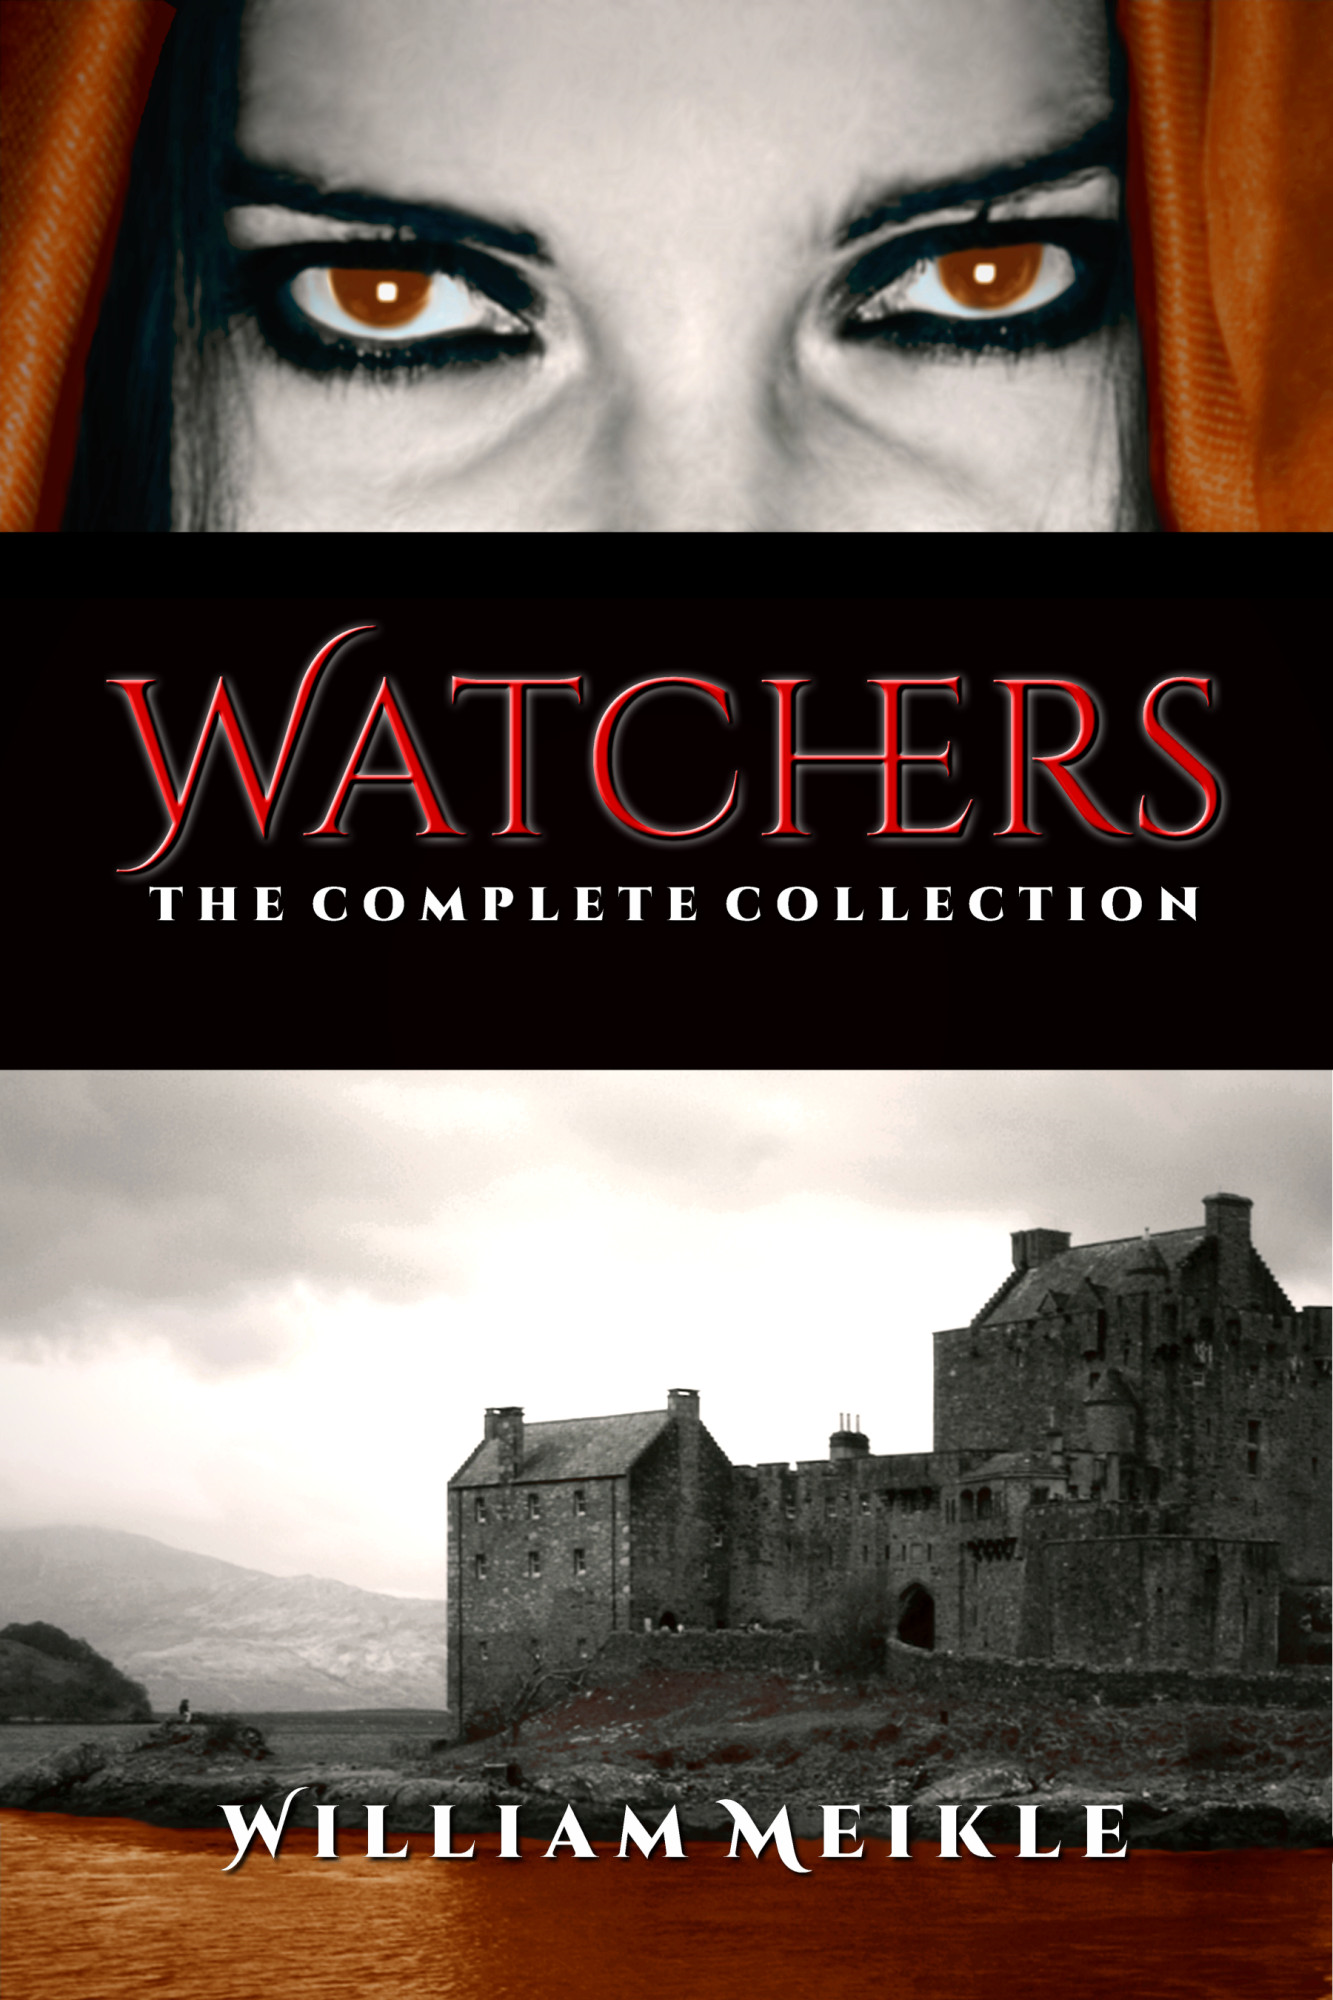 Watchers: The Complete Collection